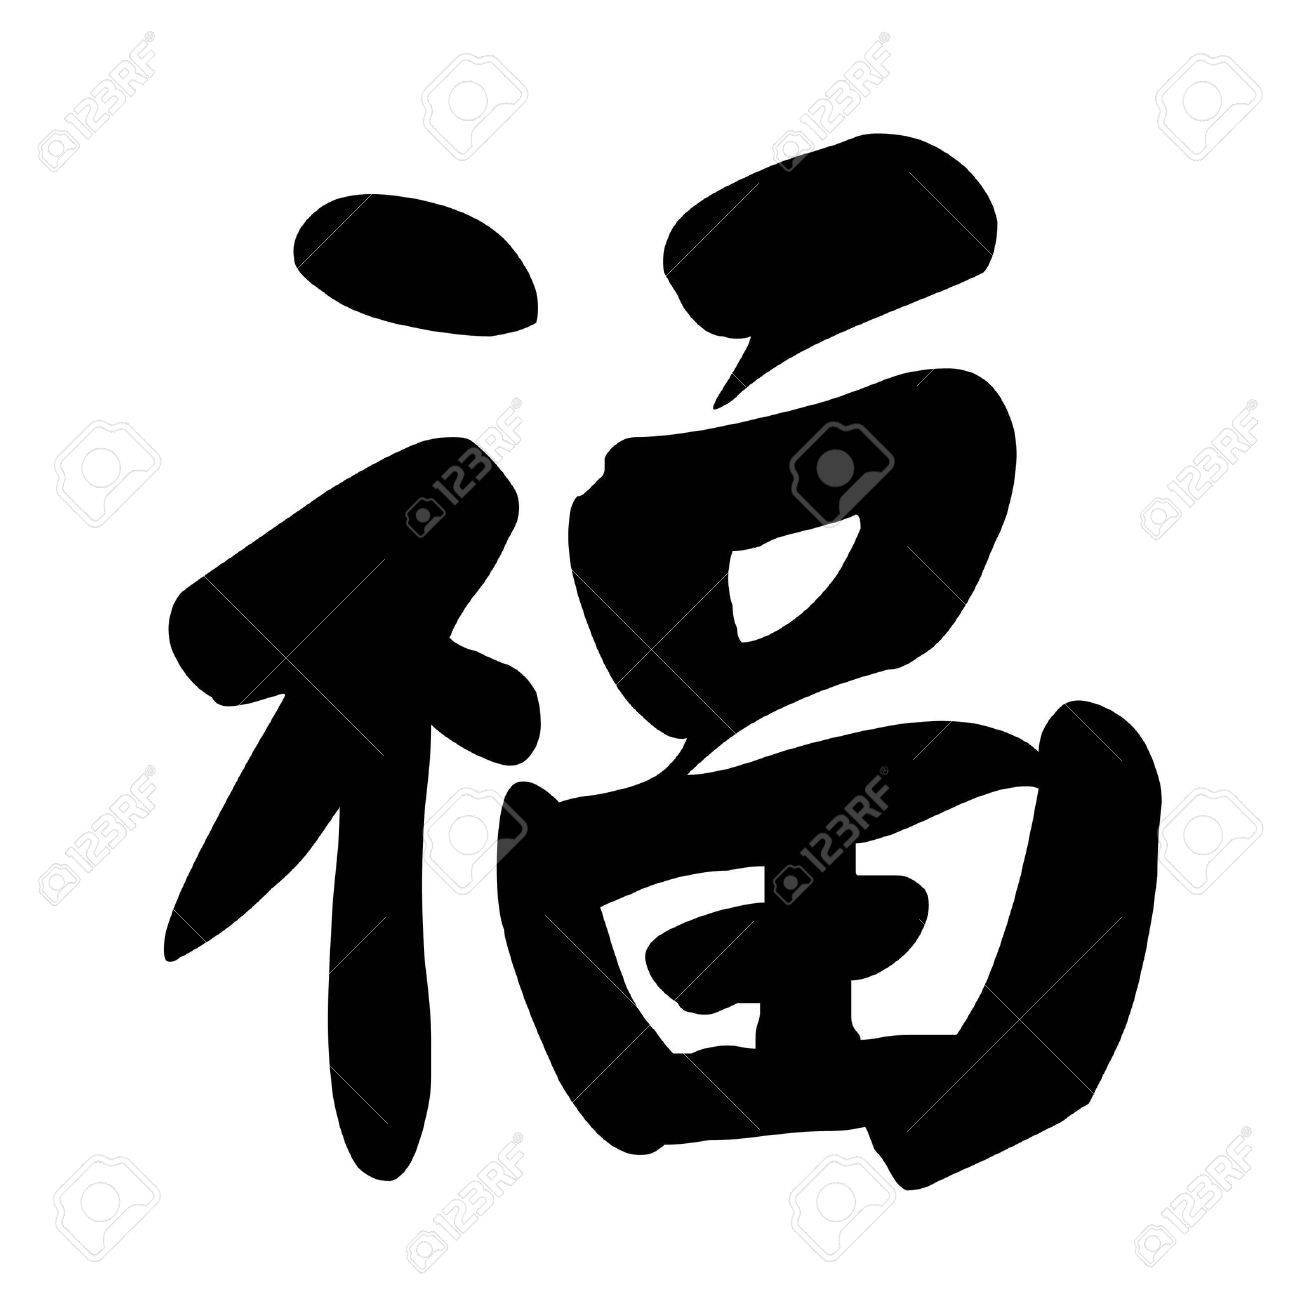 Chinese Calligraphy Character Good Fortune Or Luck Stock Photo